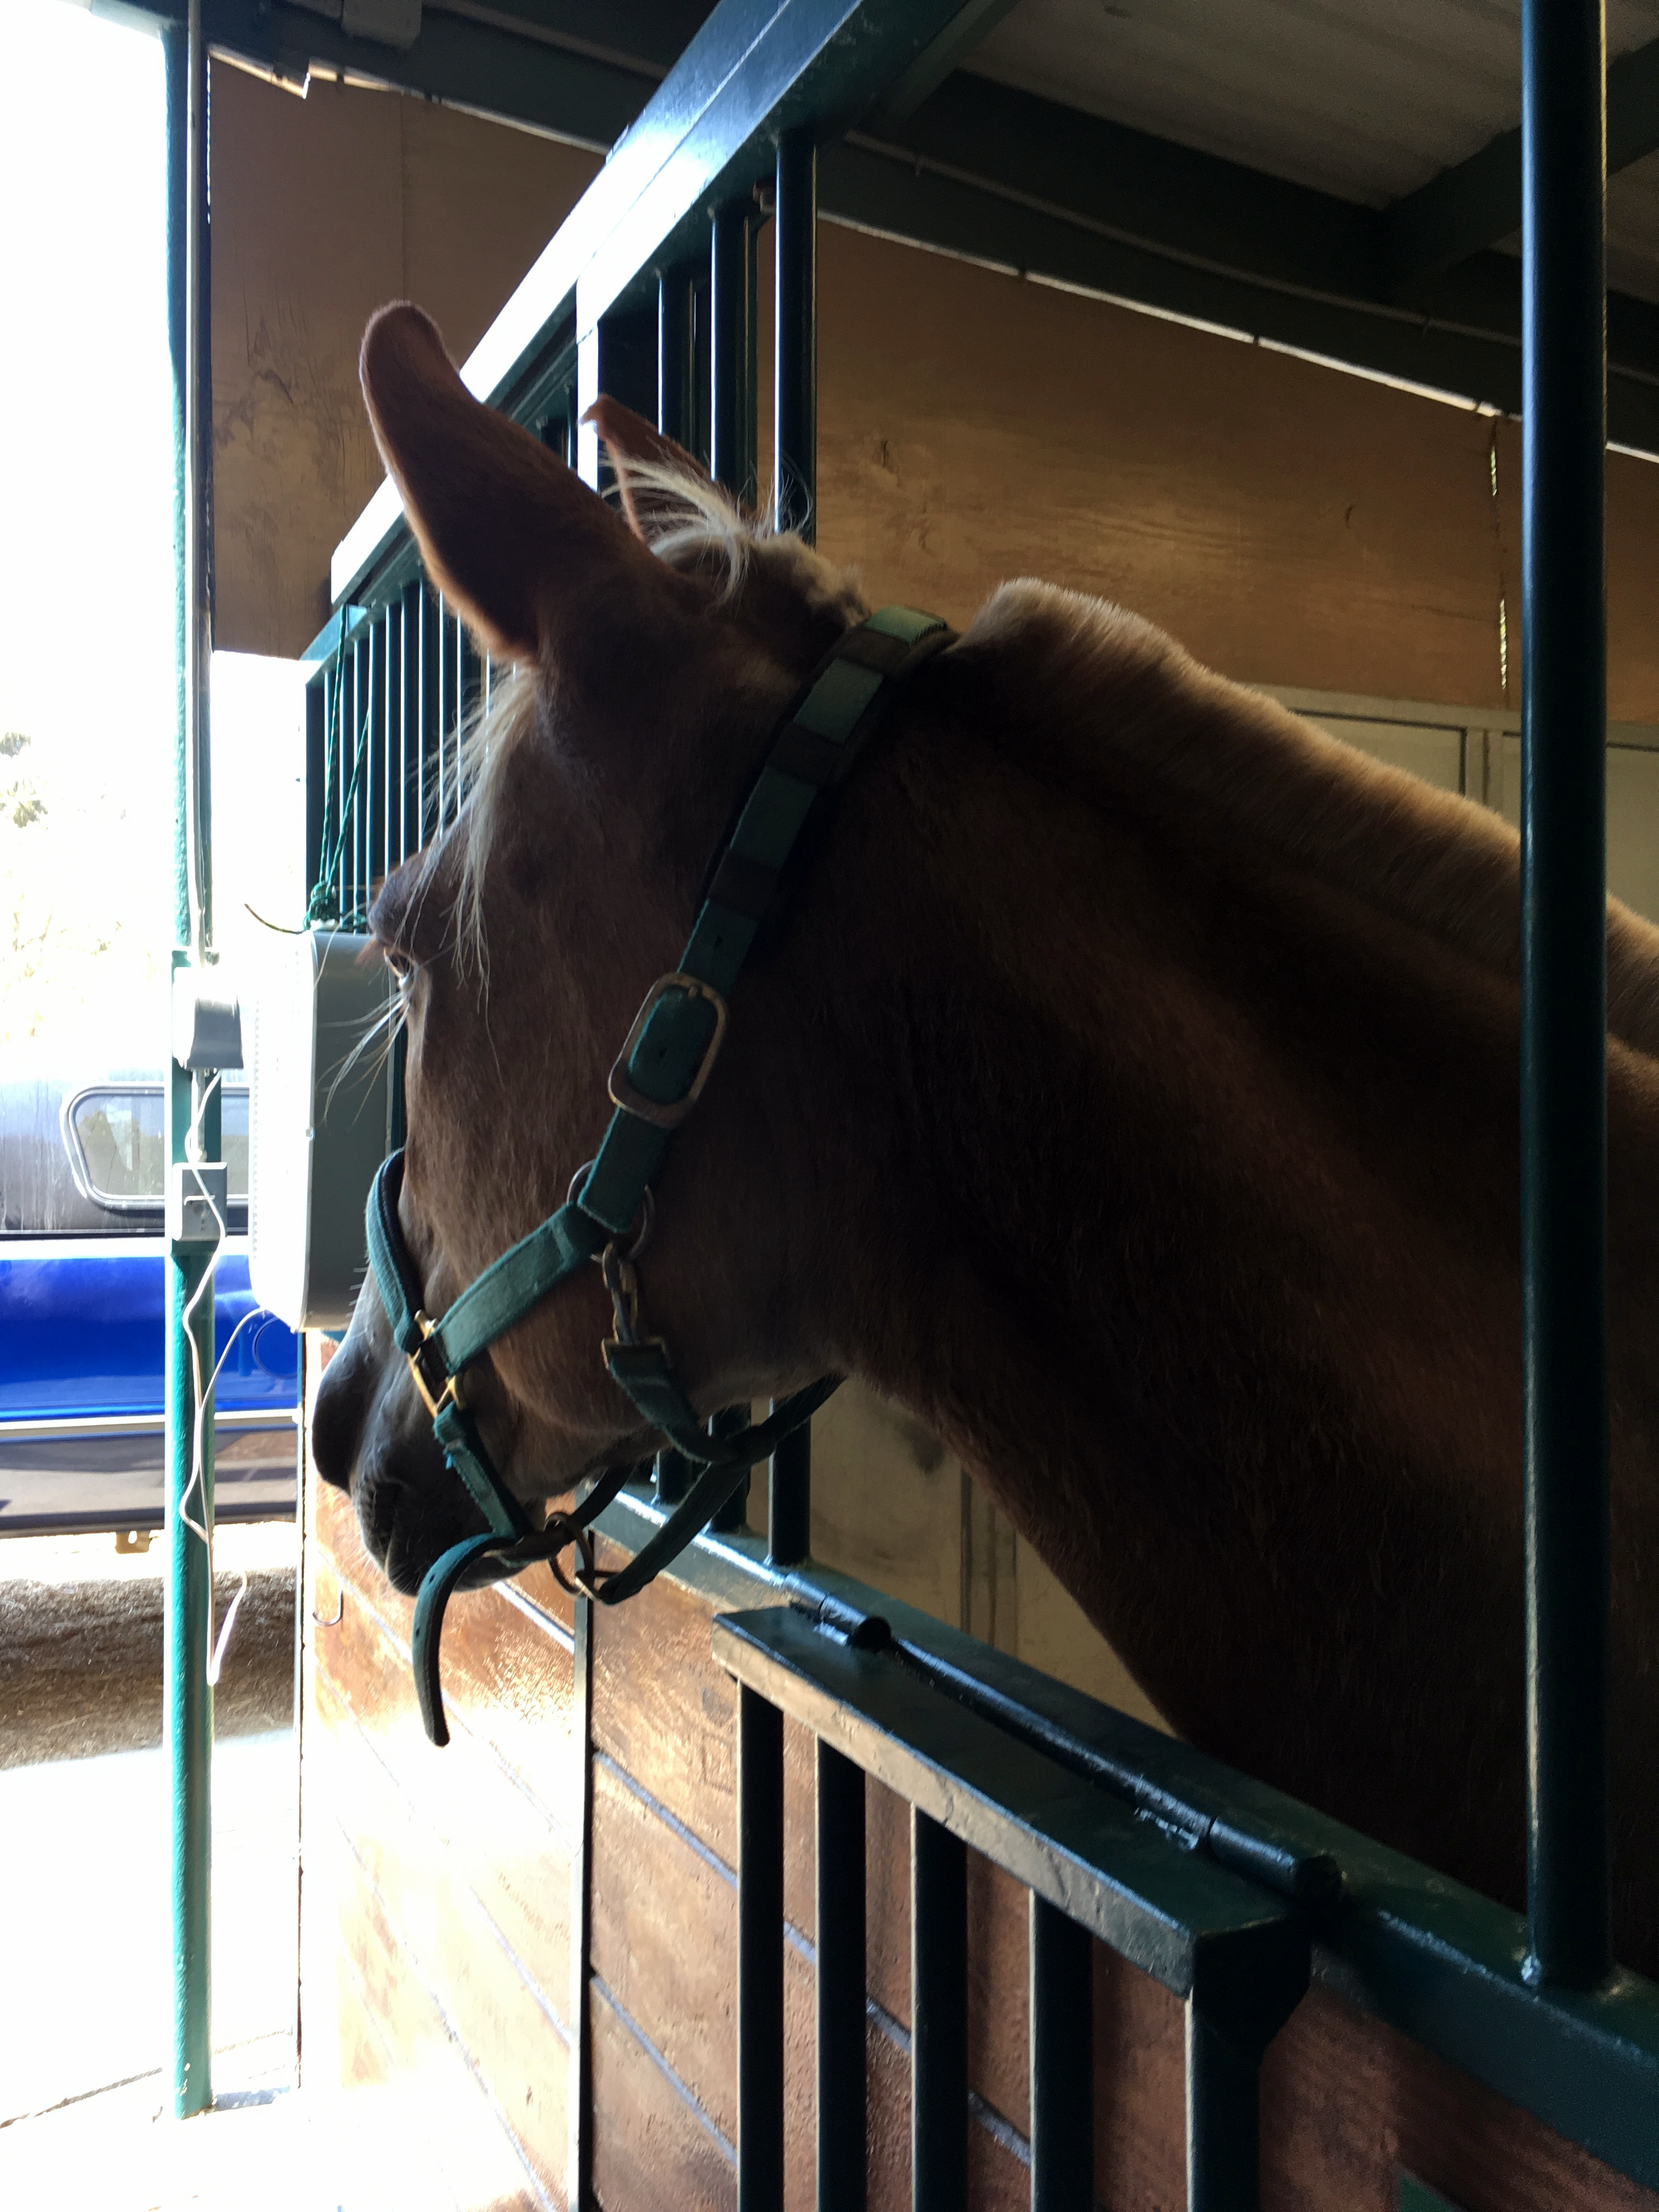 Nilla in her stall at the vet's